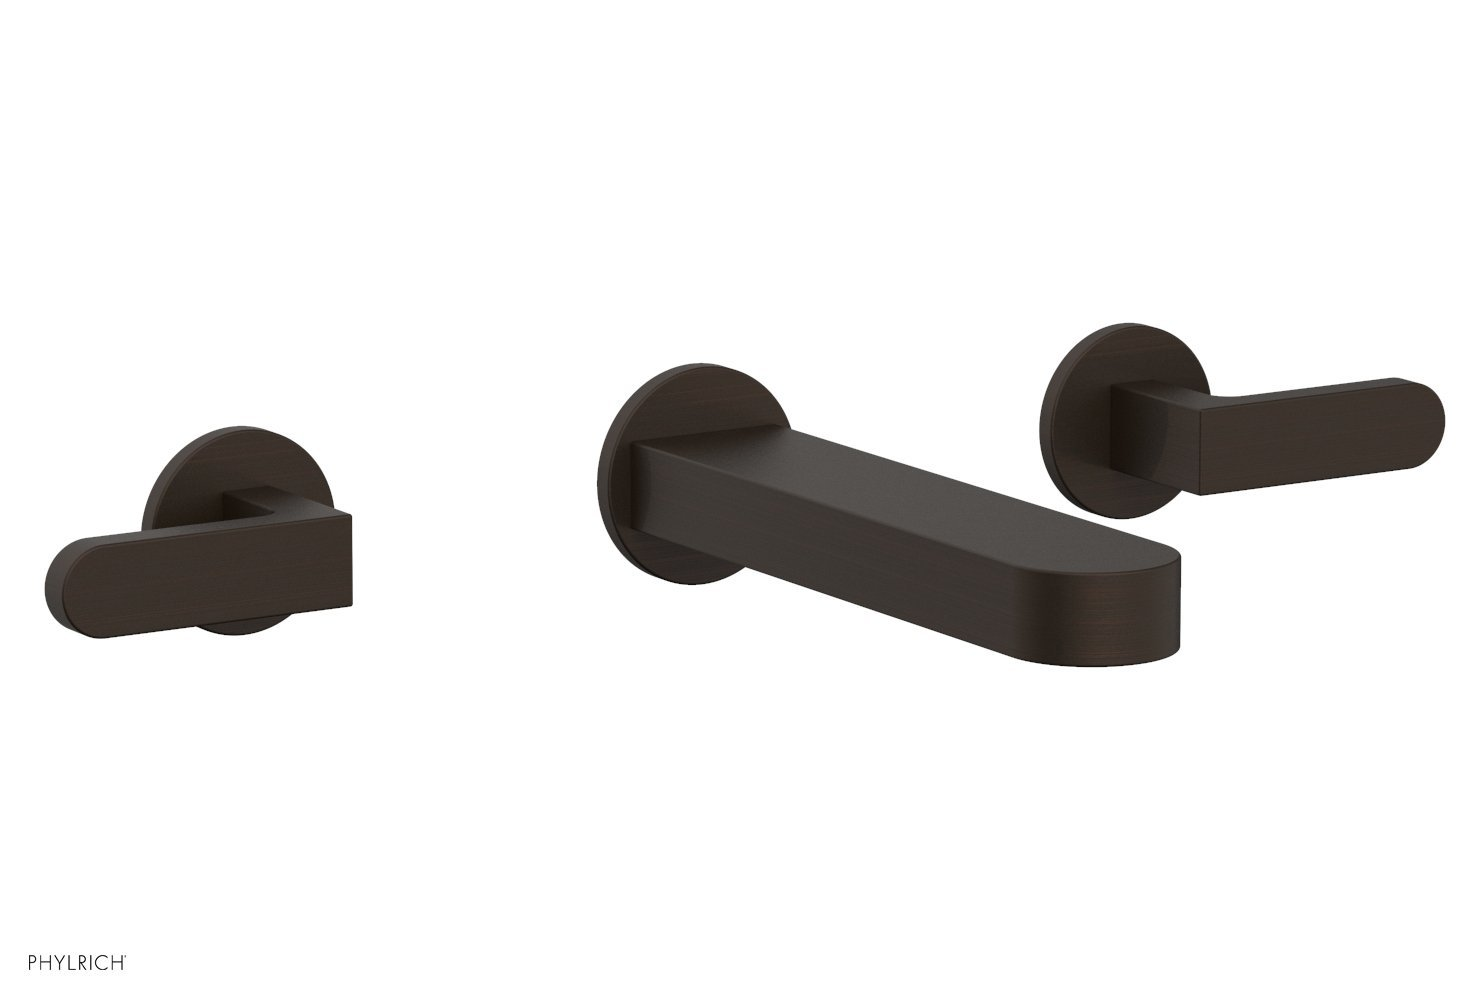 Phylrich 183-12-11B ROND Wall Lavatory Set - Lever Handles - Antique Bronze